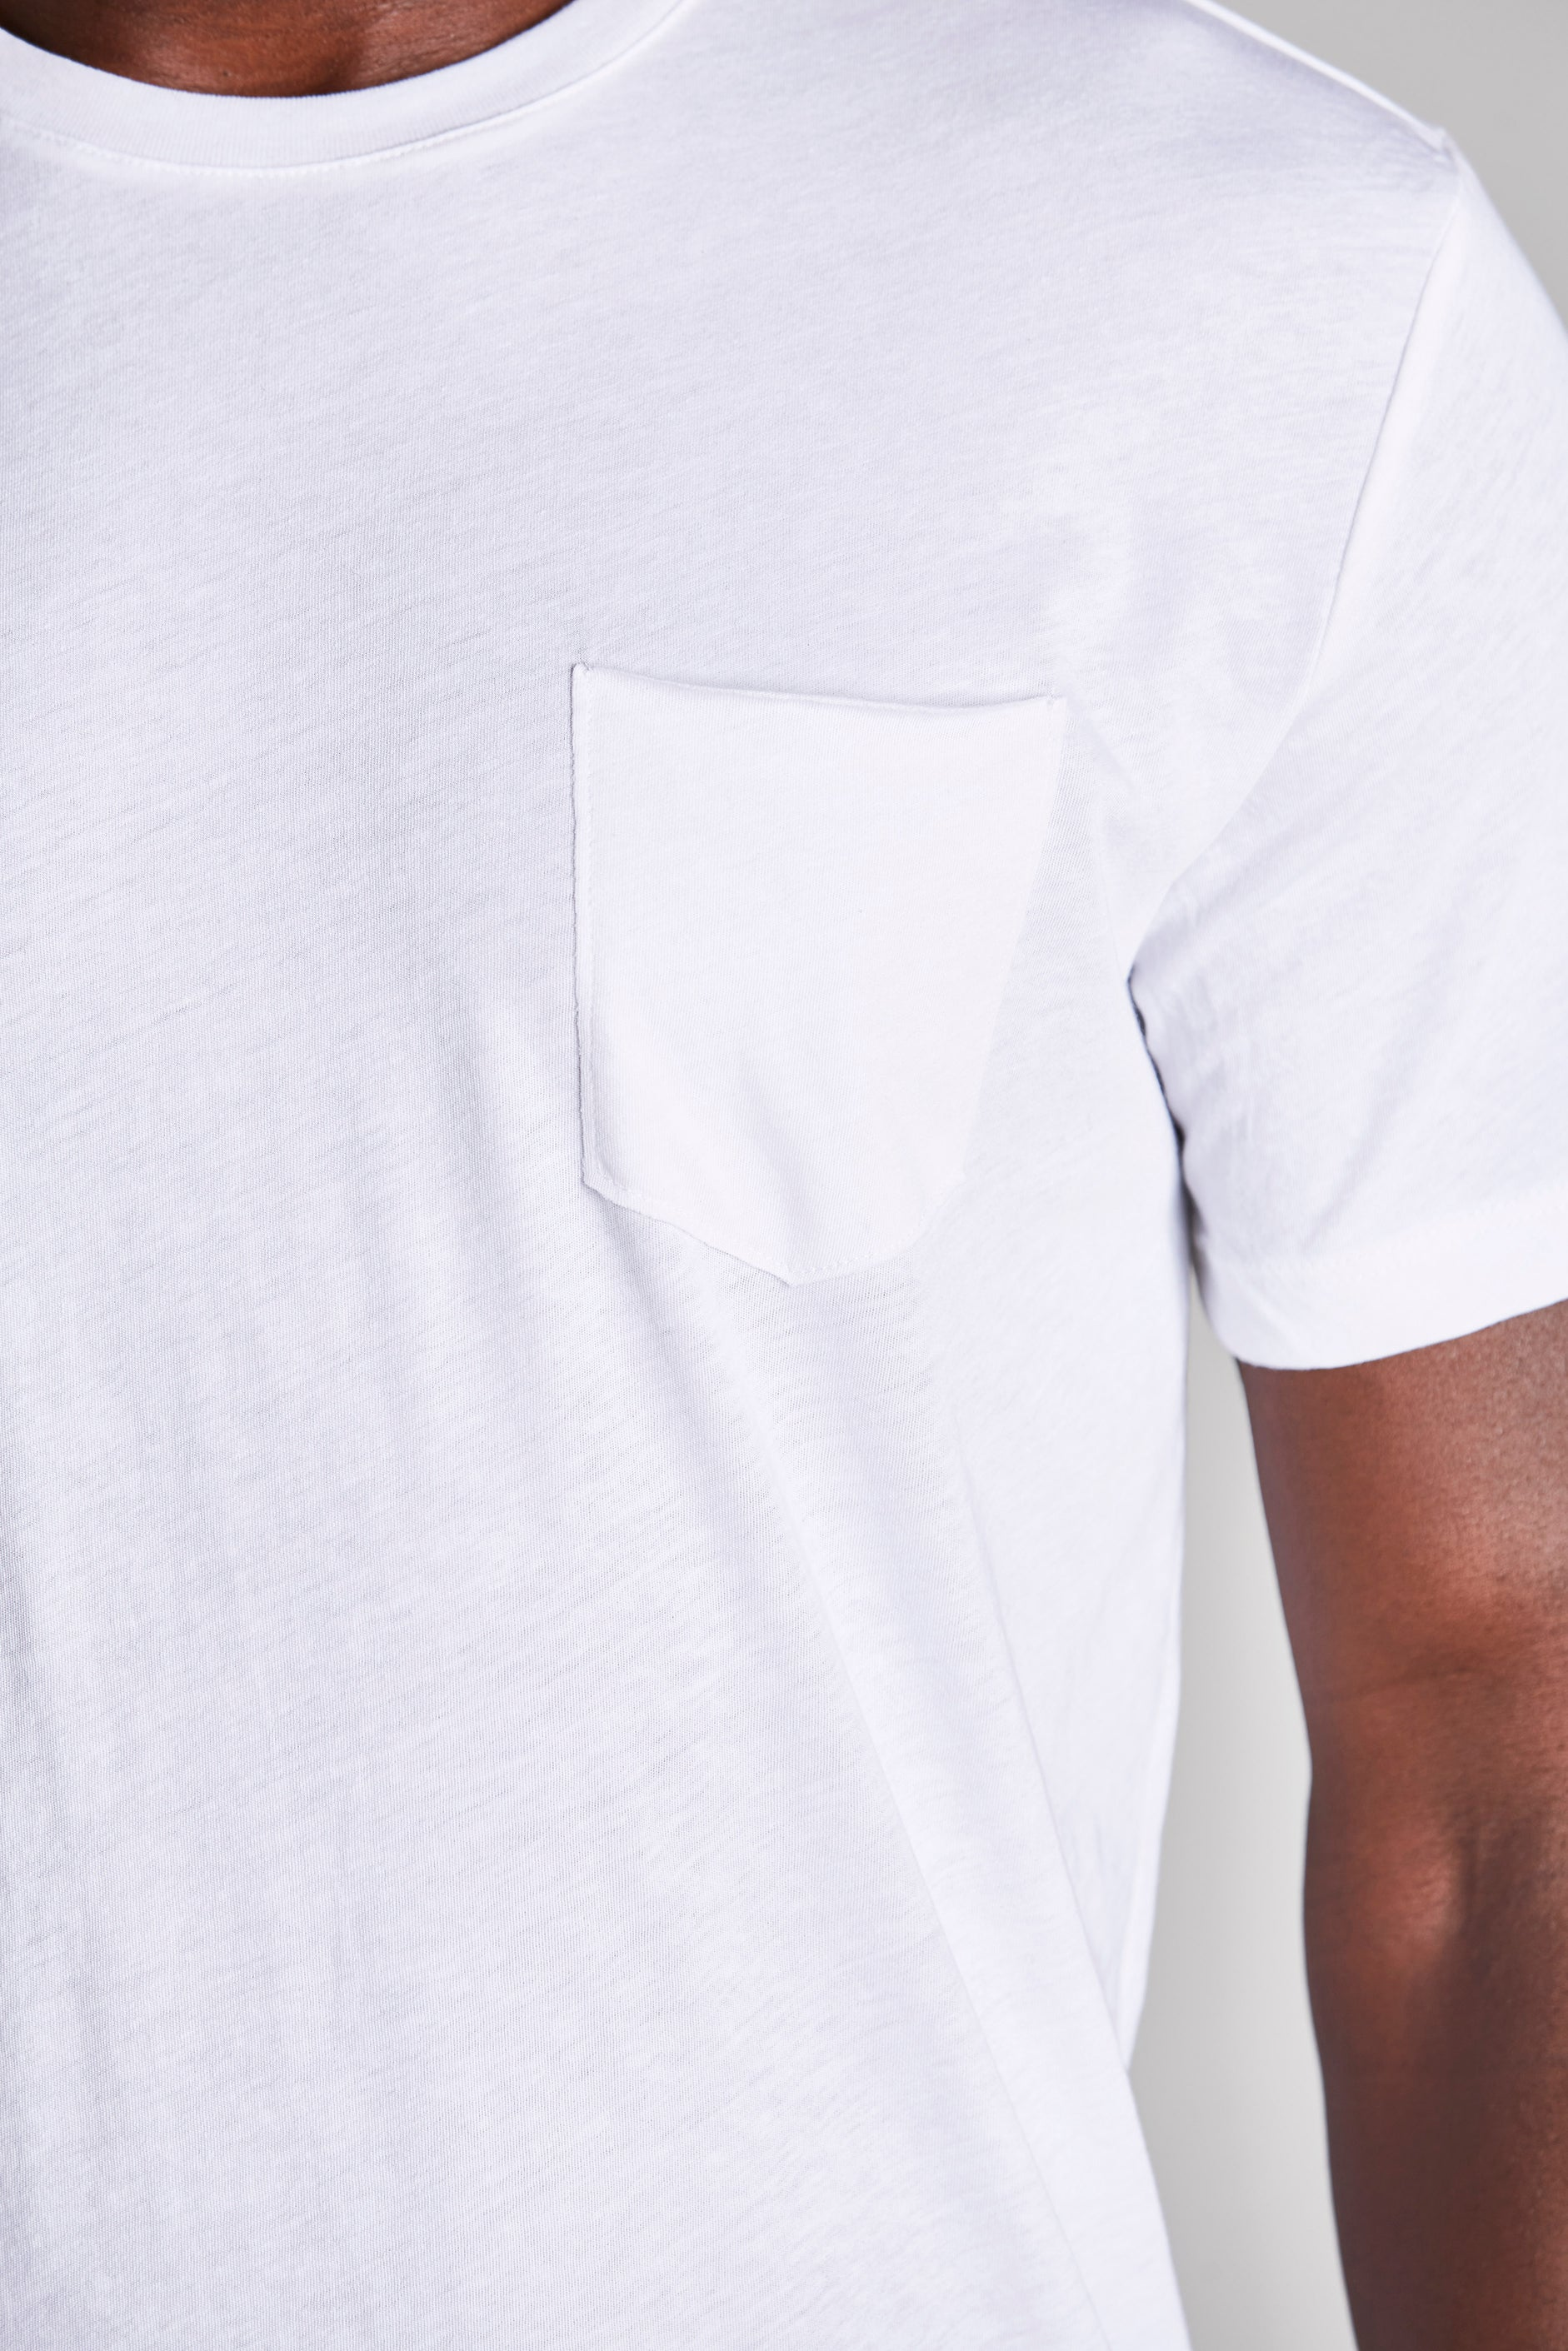 Load image into Gallery viewer, Jack Crew Short Sleeve Tee